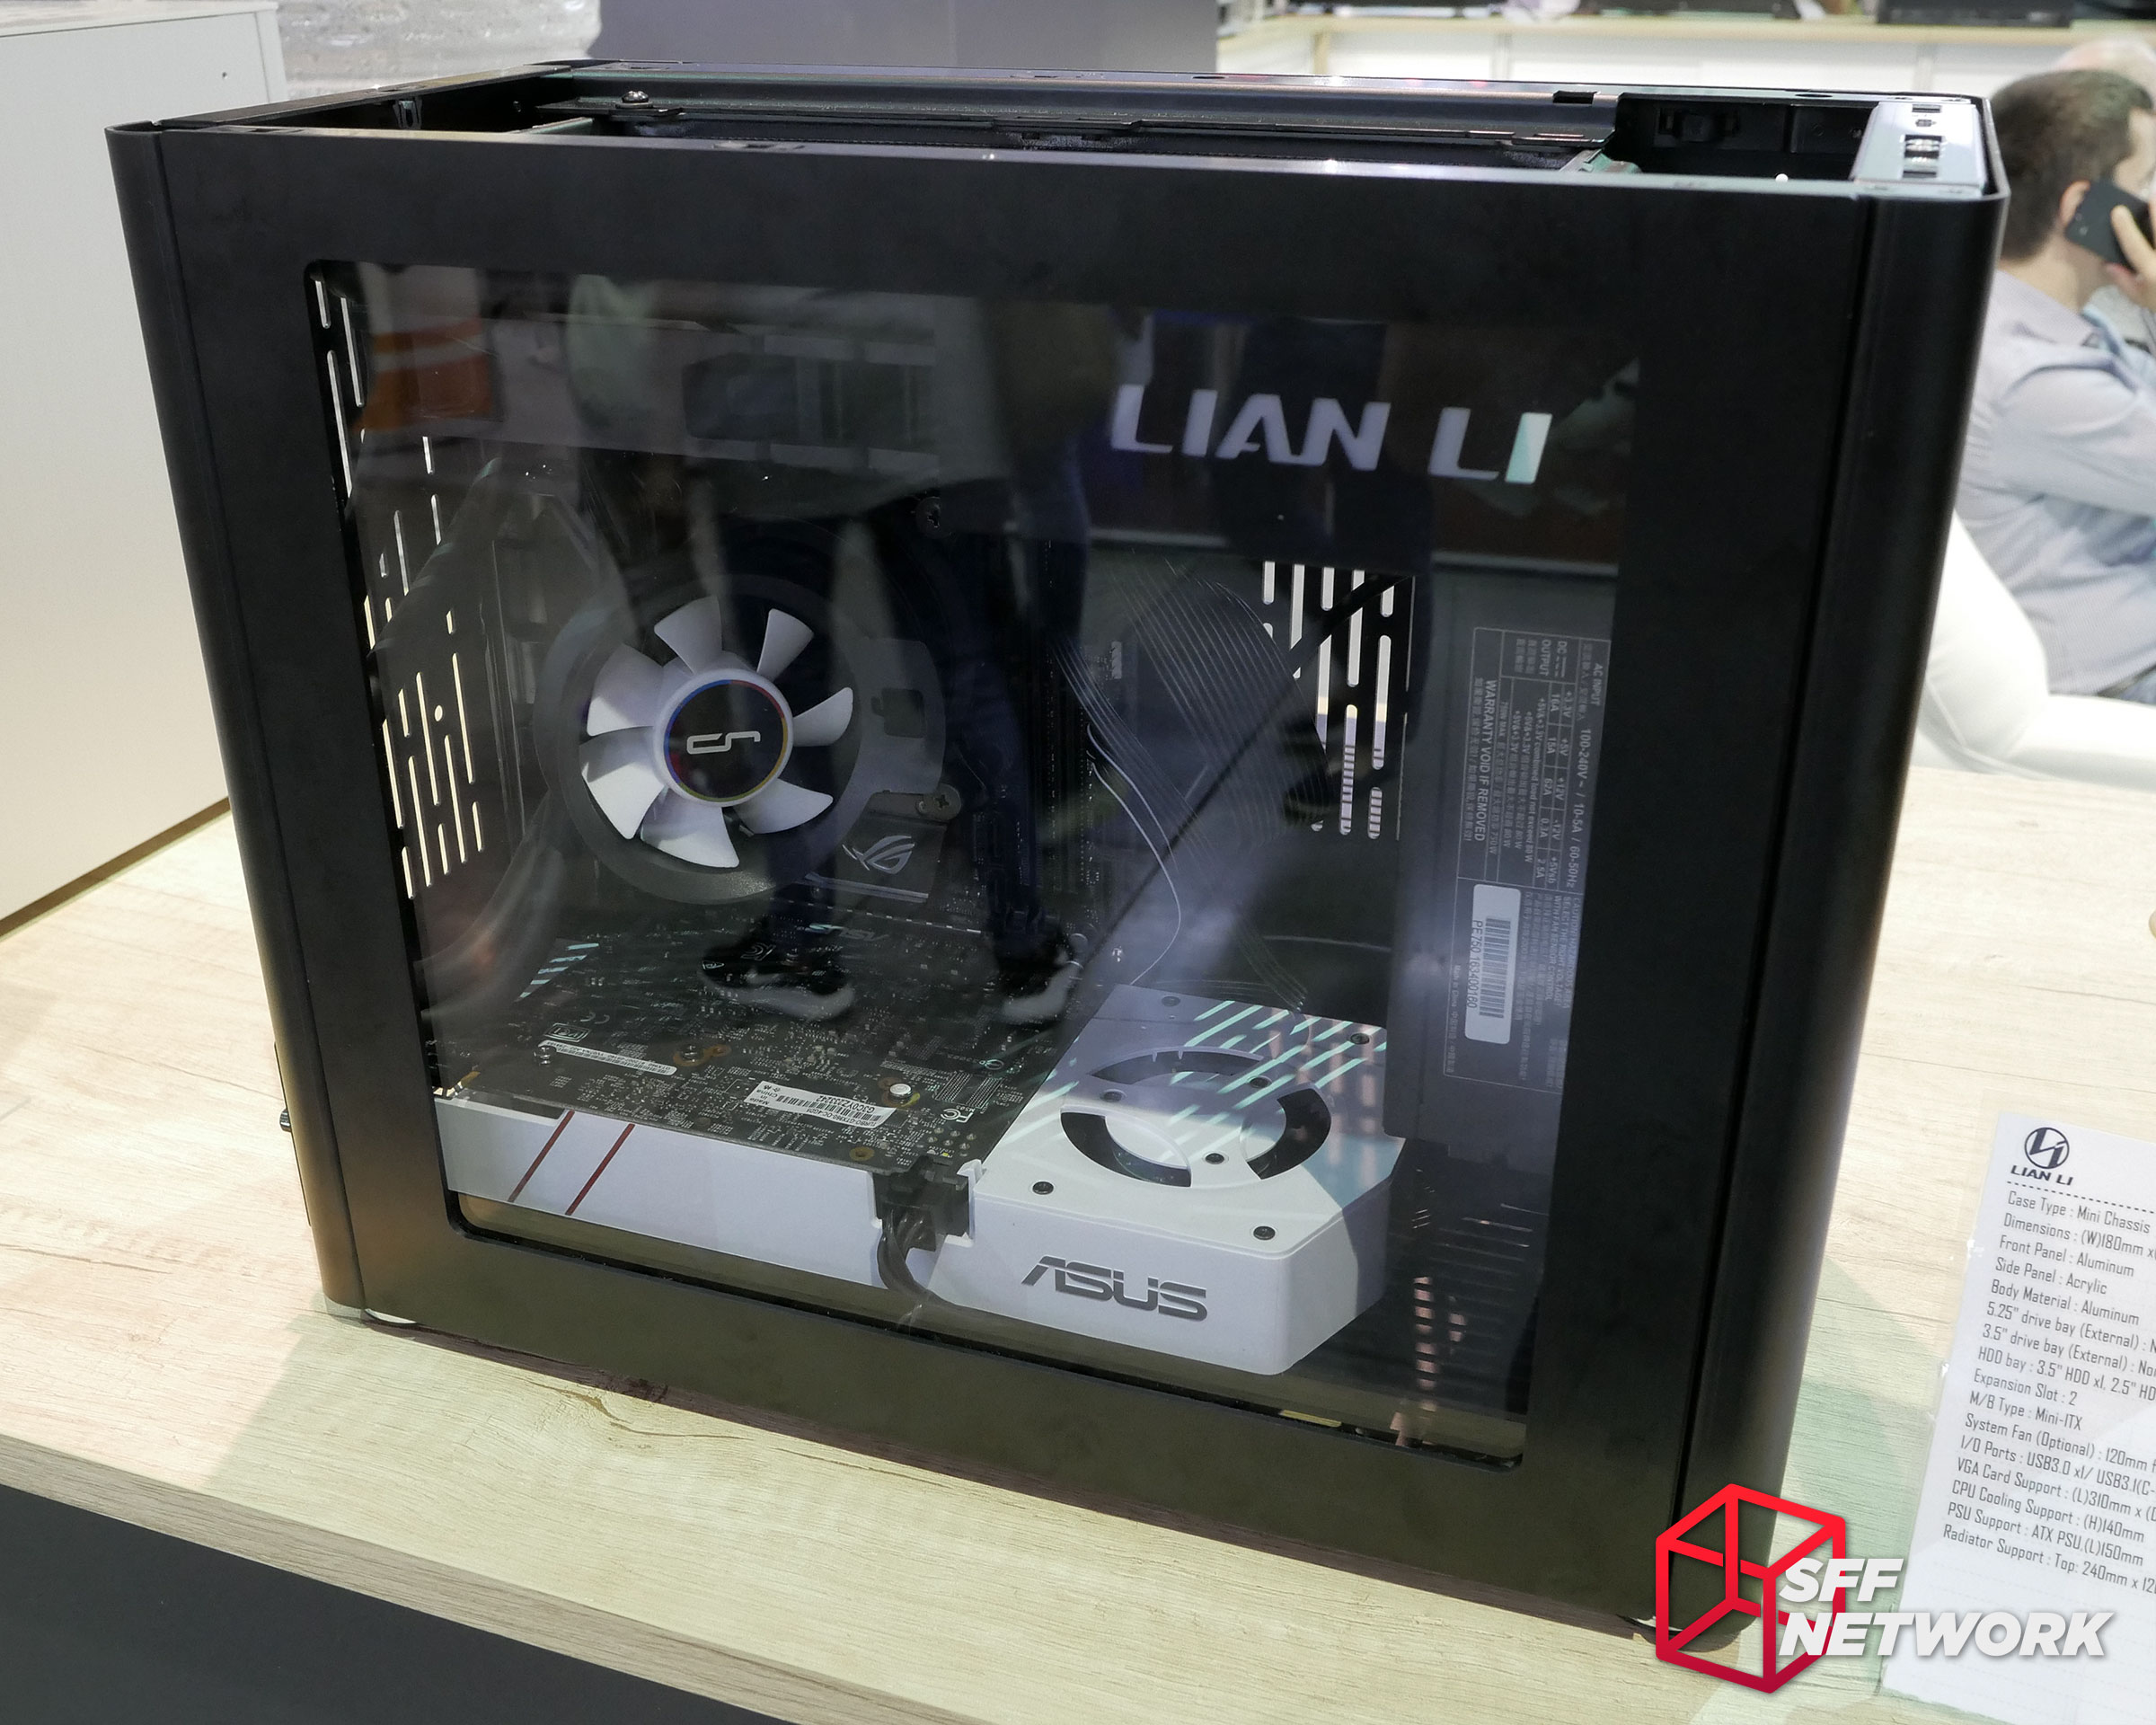 Lian Li Pc Q38 Itx Case New Pcie Extenders And More